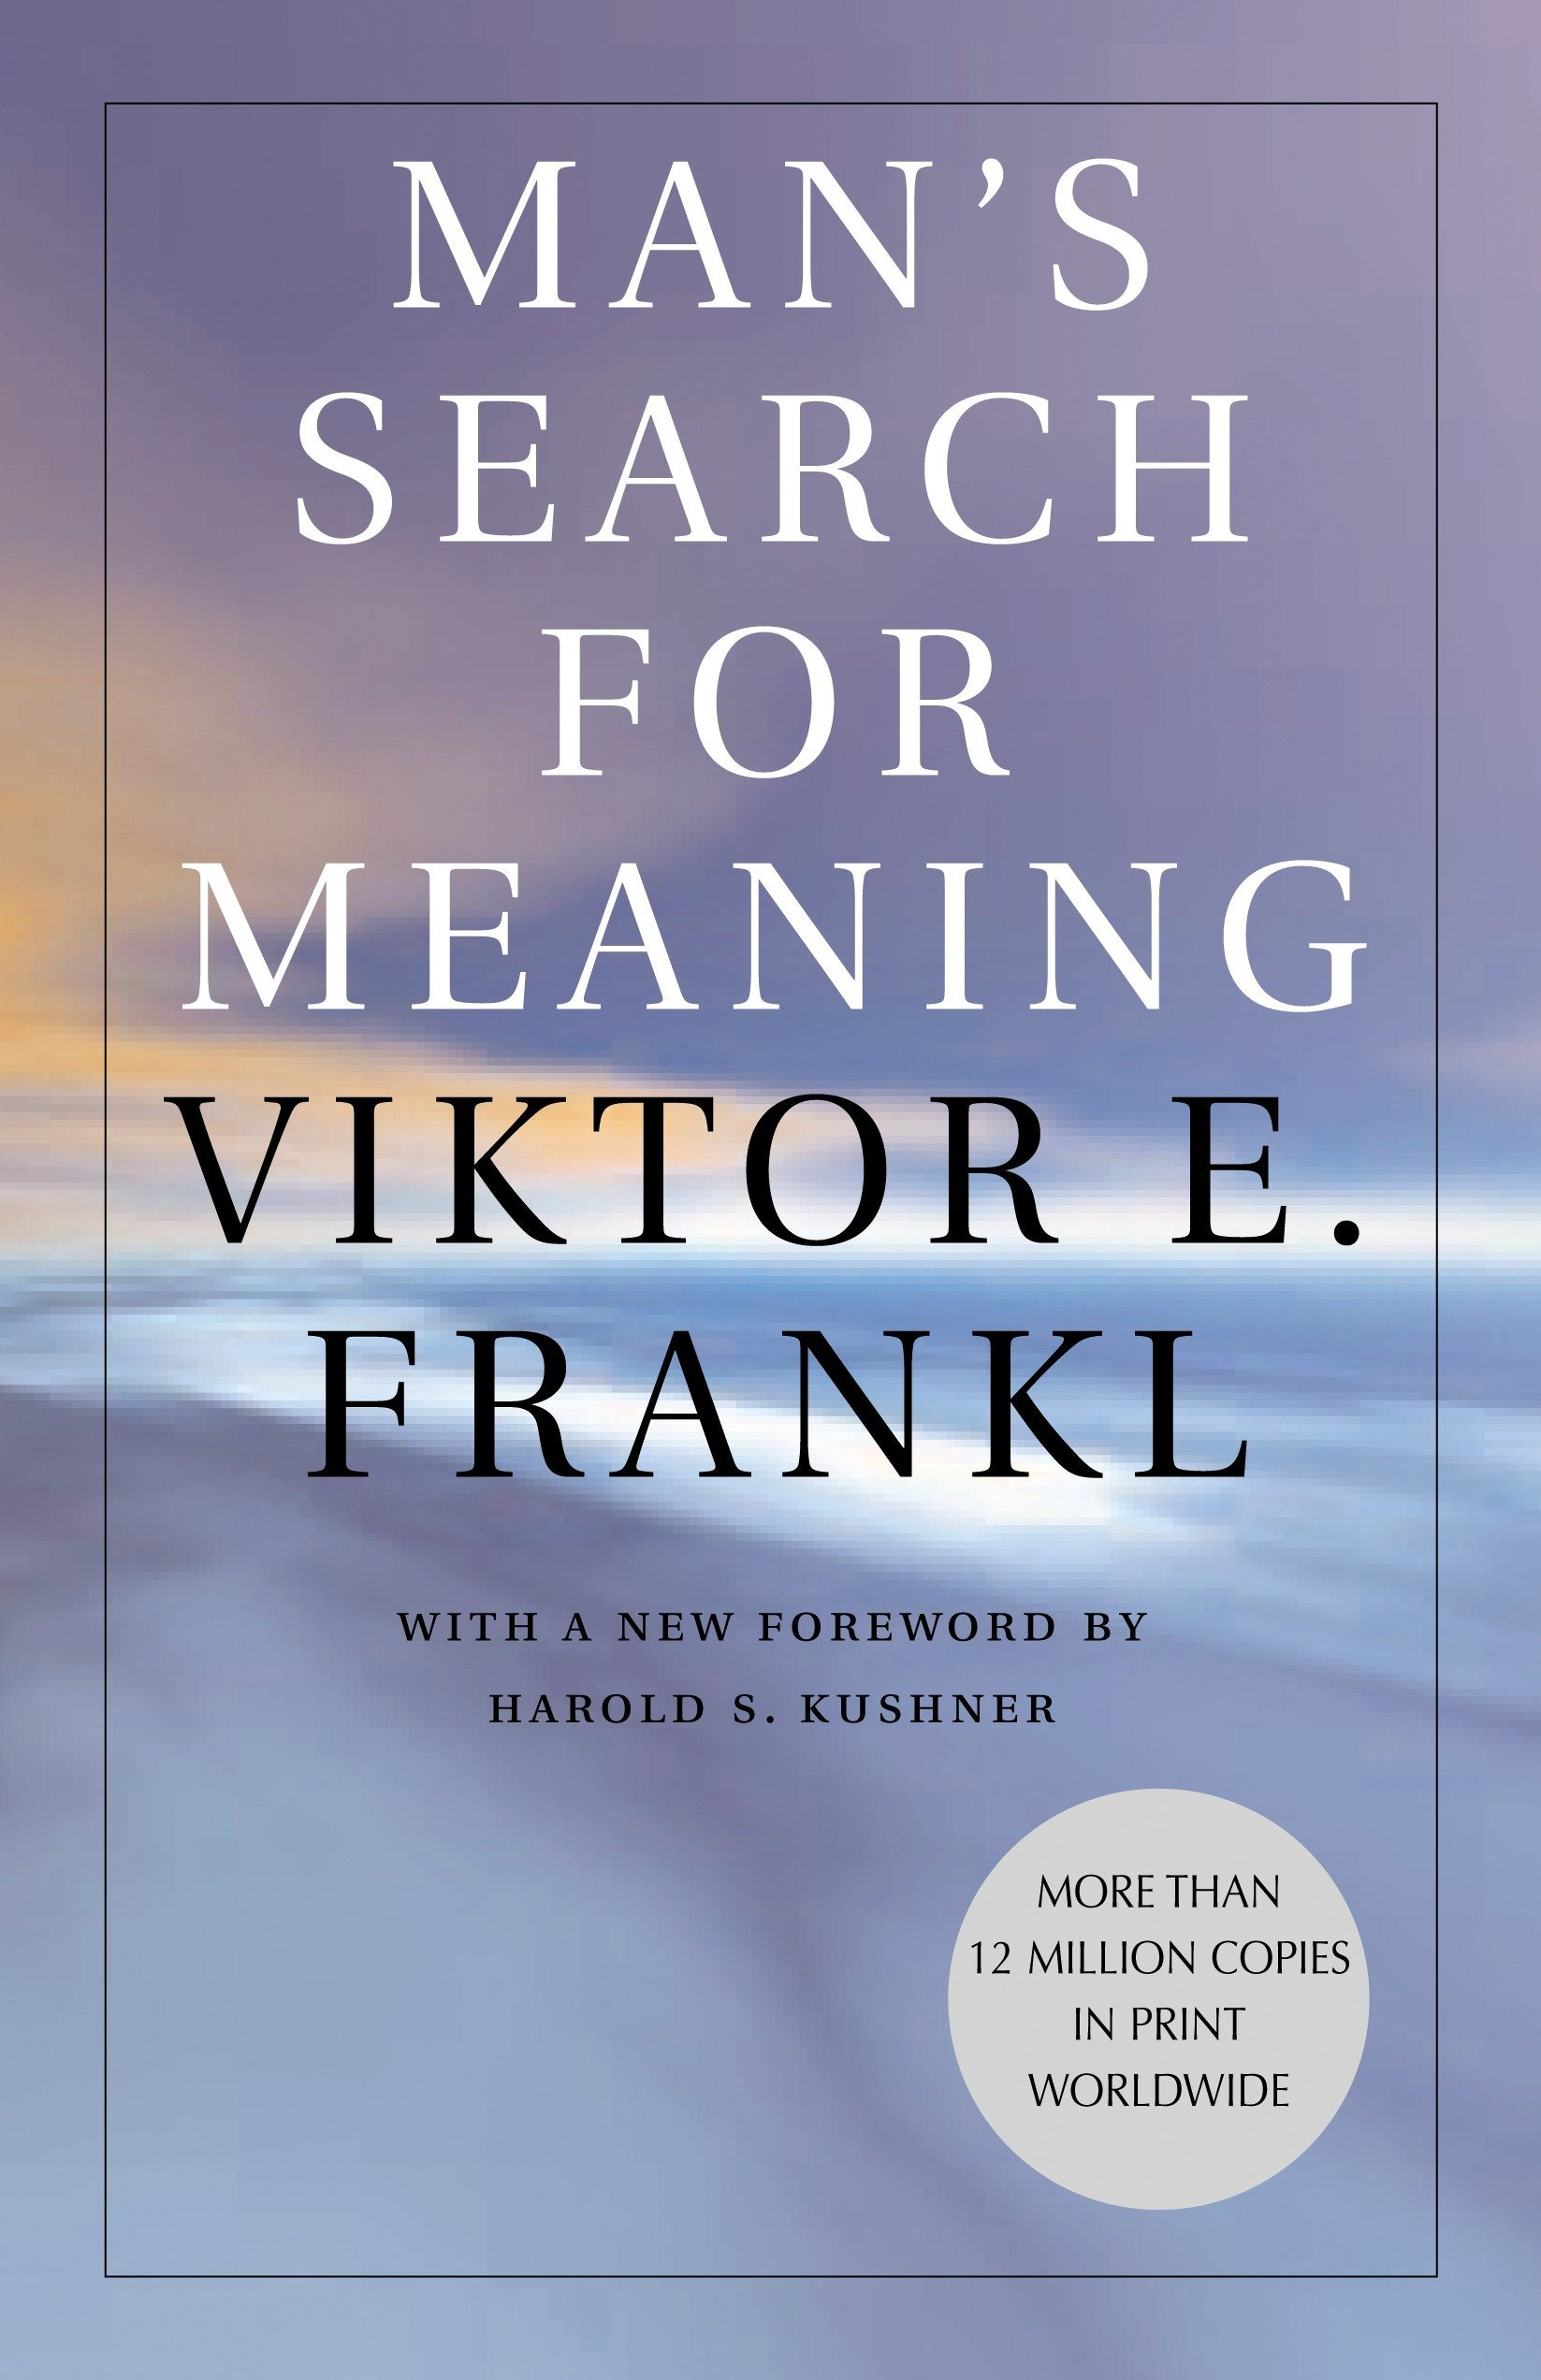 "Man's Search for Meaning - by Viktor E. FranklMan's Search for Meaning by Viktor E. Frankl is among the most influential works of psychiatric literature since Freud. The book begins with a lengthy, austere, and deeply moving personal essay about Frankl's imprisonment in Auschwitz and other concentration camps for five years, and his struggle during this time to find reasons to live. The second part of the book, called ""Logotherapy in a Nutshell,"" describes the psychotherapeutic method that Frankl pioneered as a result of his experiences in the concentration camps. Freud believed that sexual instincts and urges were the driving force of humanity's life; Frankl, by contrast, believes that man's deepest desire is to search for meaning and purpose.Frankl's logotherapy, therefore, is much more compatible with Western religions than Freudian psychotherapy. This is a fascinating, sophisticated, and very human book. At times, Frankl's personal and professional discourses merge into a style of tremendous power.""Our generation is realistic, for we have come to know man as he really is,"" Frankl writes. ""After all, man is that being who invented the gas chambers of Auschwitz; however, he is also that being who entered those gas chambers upright, with the Lord's Prayer or the Shema Yisrael on his lips."""